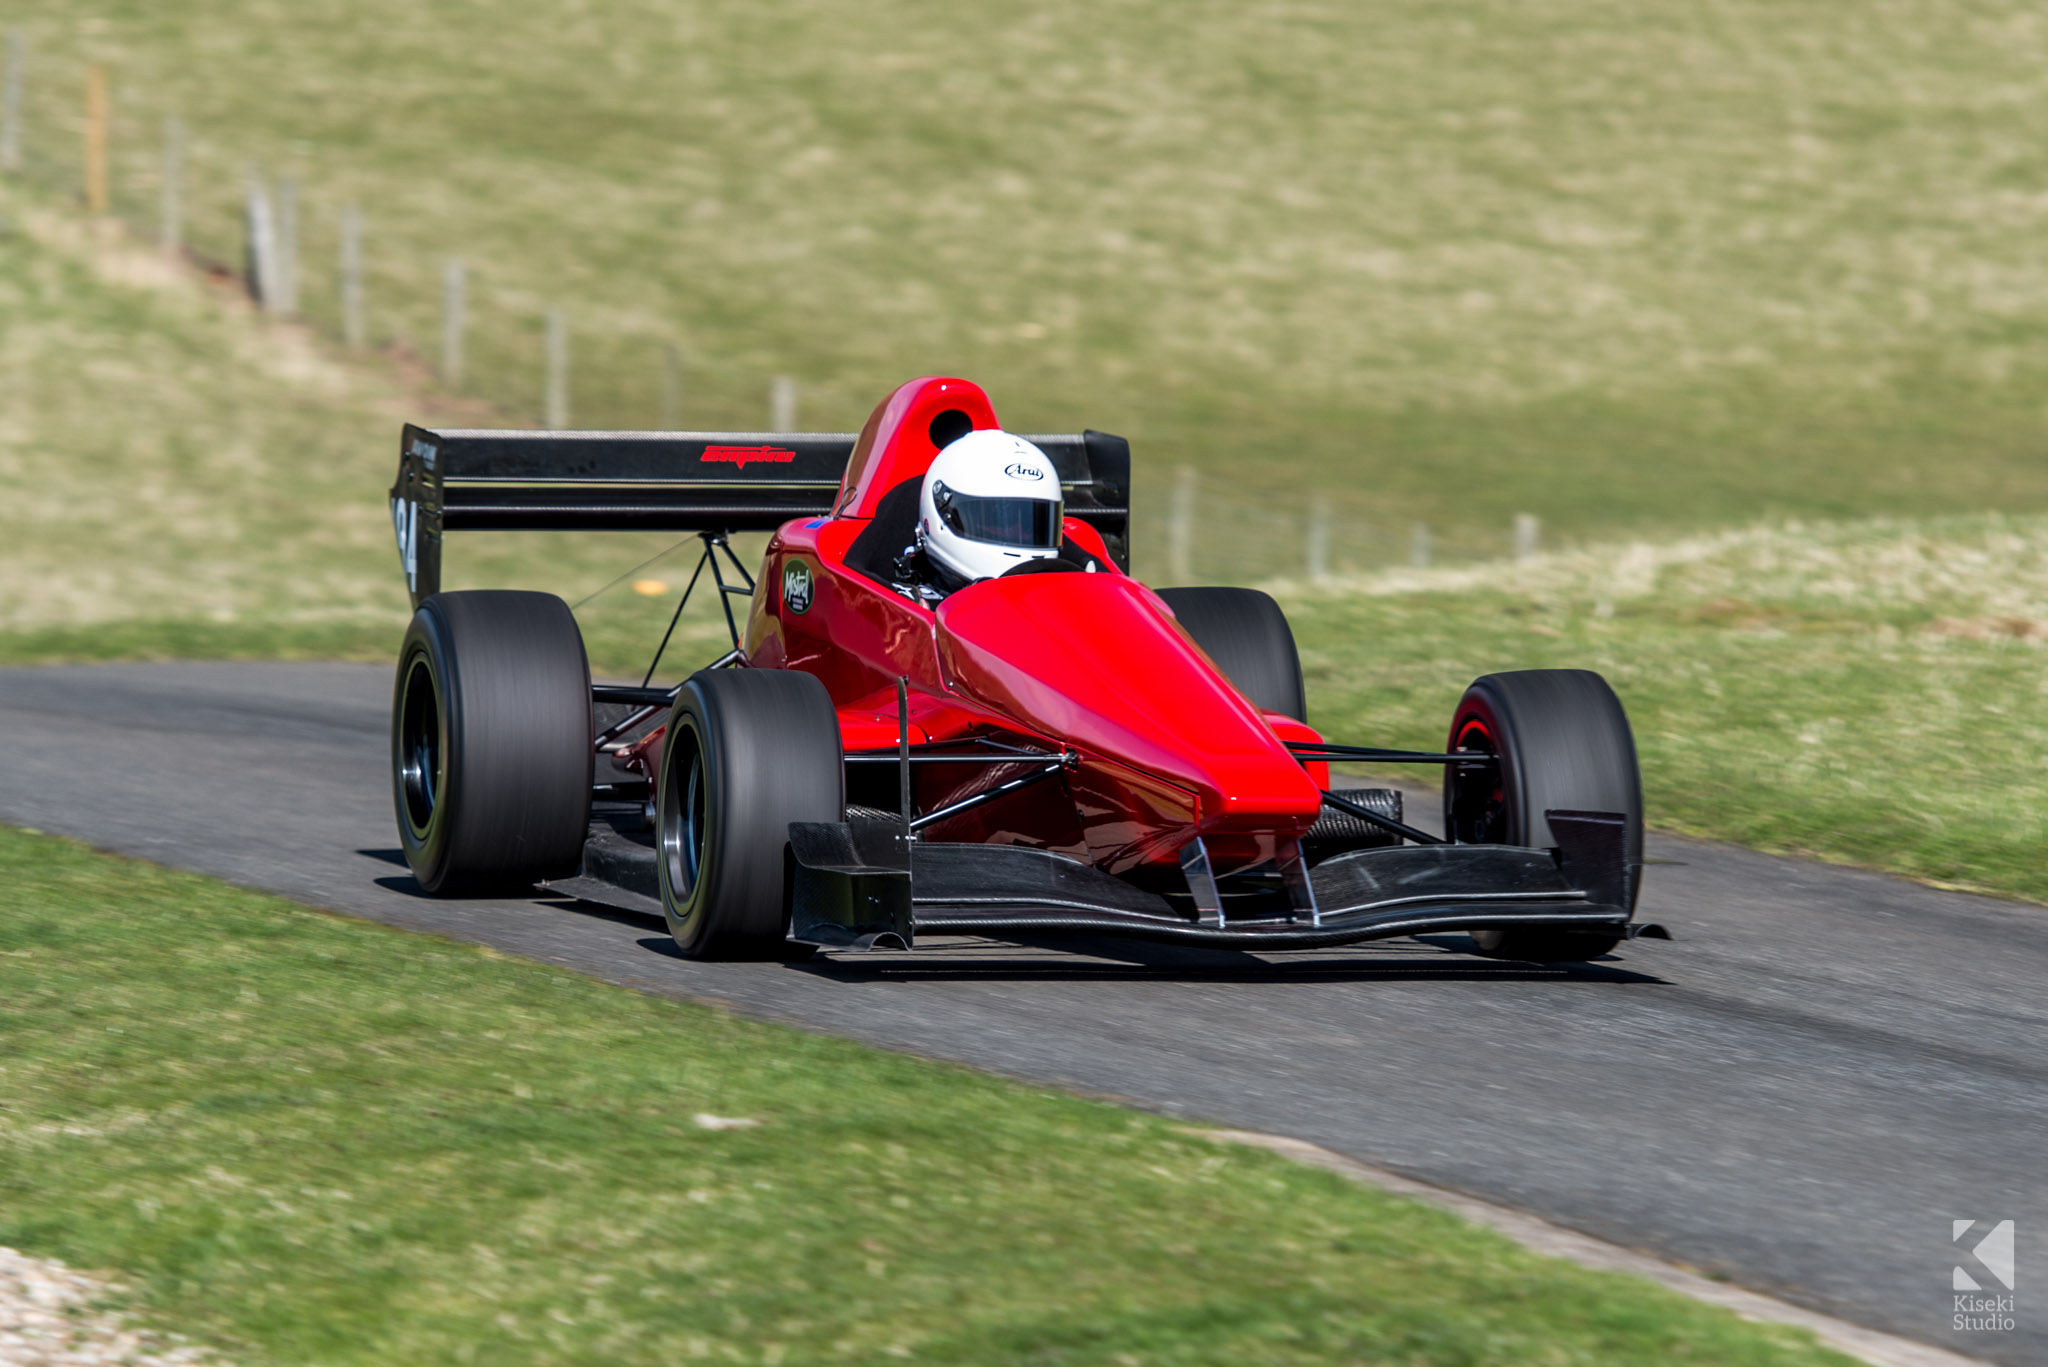 Empire 00 Evo Series at Harewood Speed Hillclimb